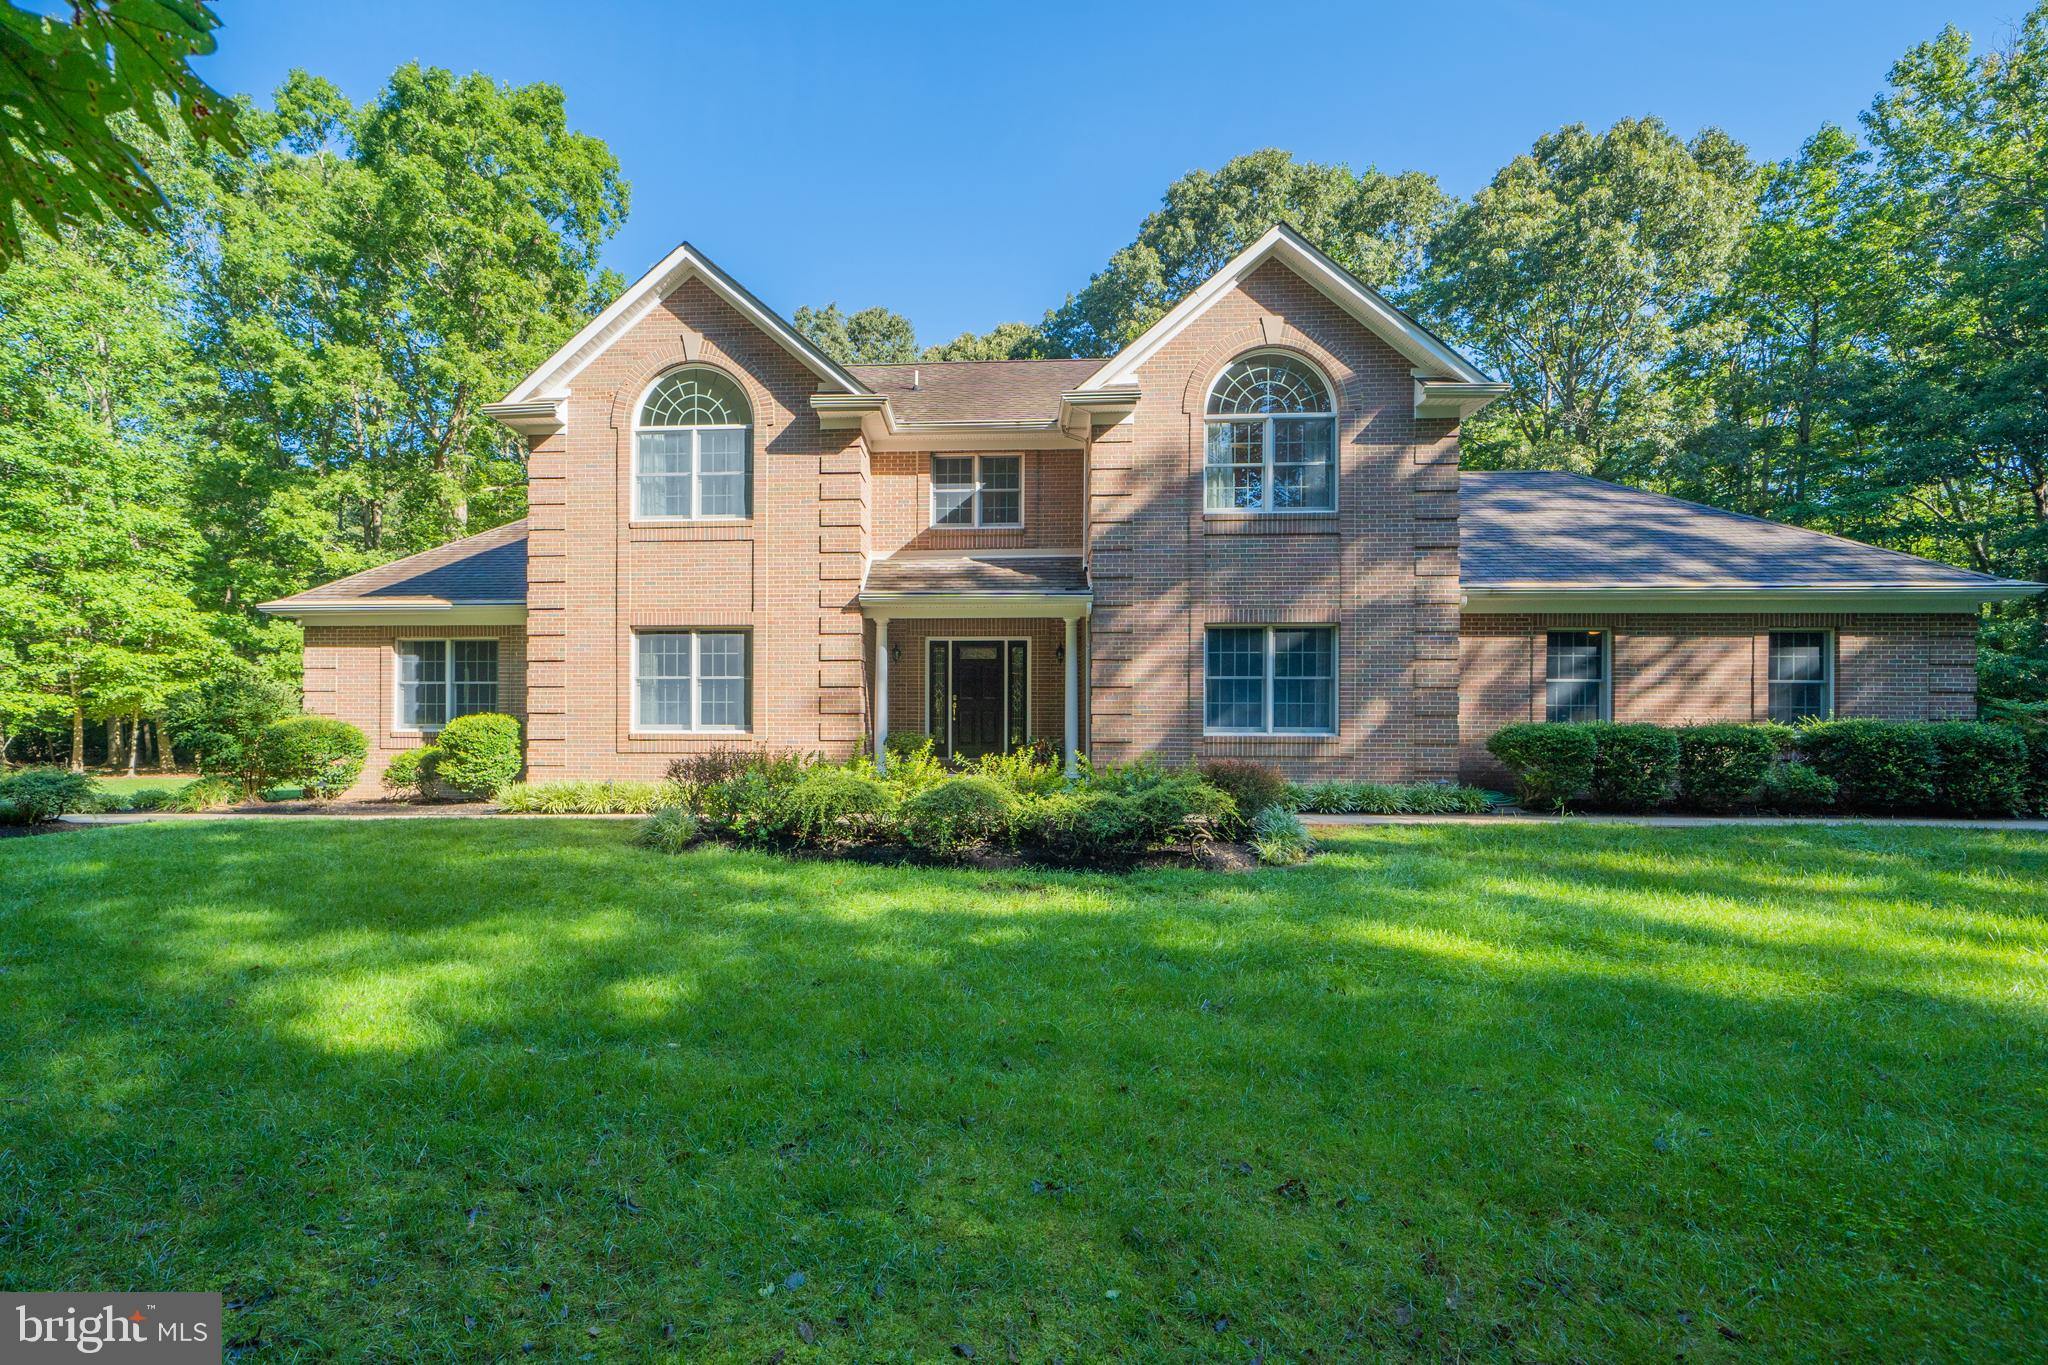 ****COMING SOON!!!****CUSTOM HOME ON ALMOST 5 Acres!!!****Beautifully maintained home in the desirab